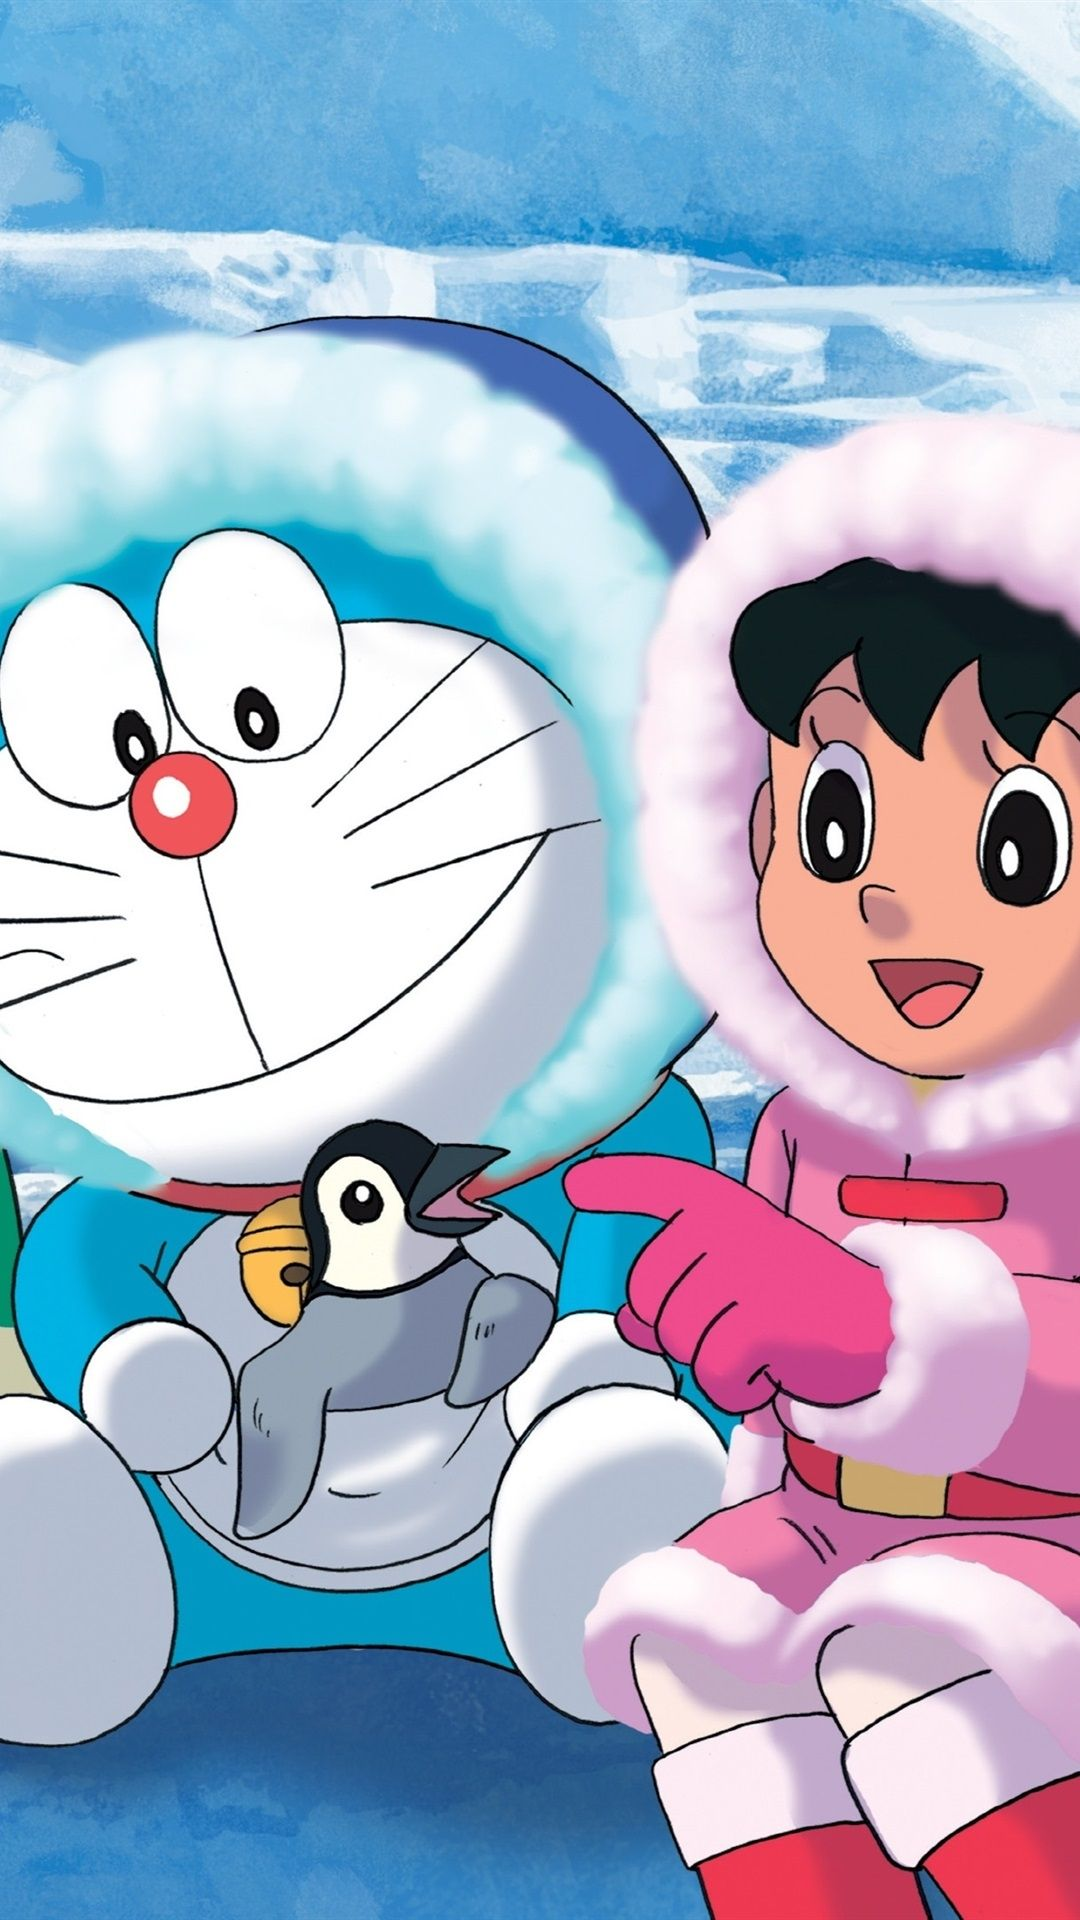 Doraemon Wallpaper Hd Android Hd Wallpapers Backgrounds Intended For The Most Brilliant Doraemon Cute Doraemon Wallpapers Doremon Cartoon Cartoon Wallpaper Hd Cute doraemon wallpaper doraemon pictures